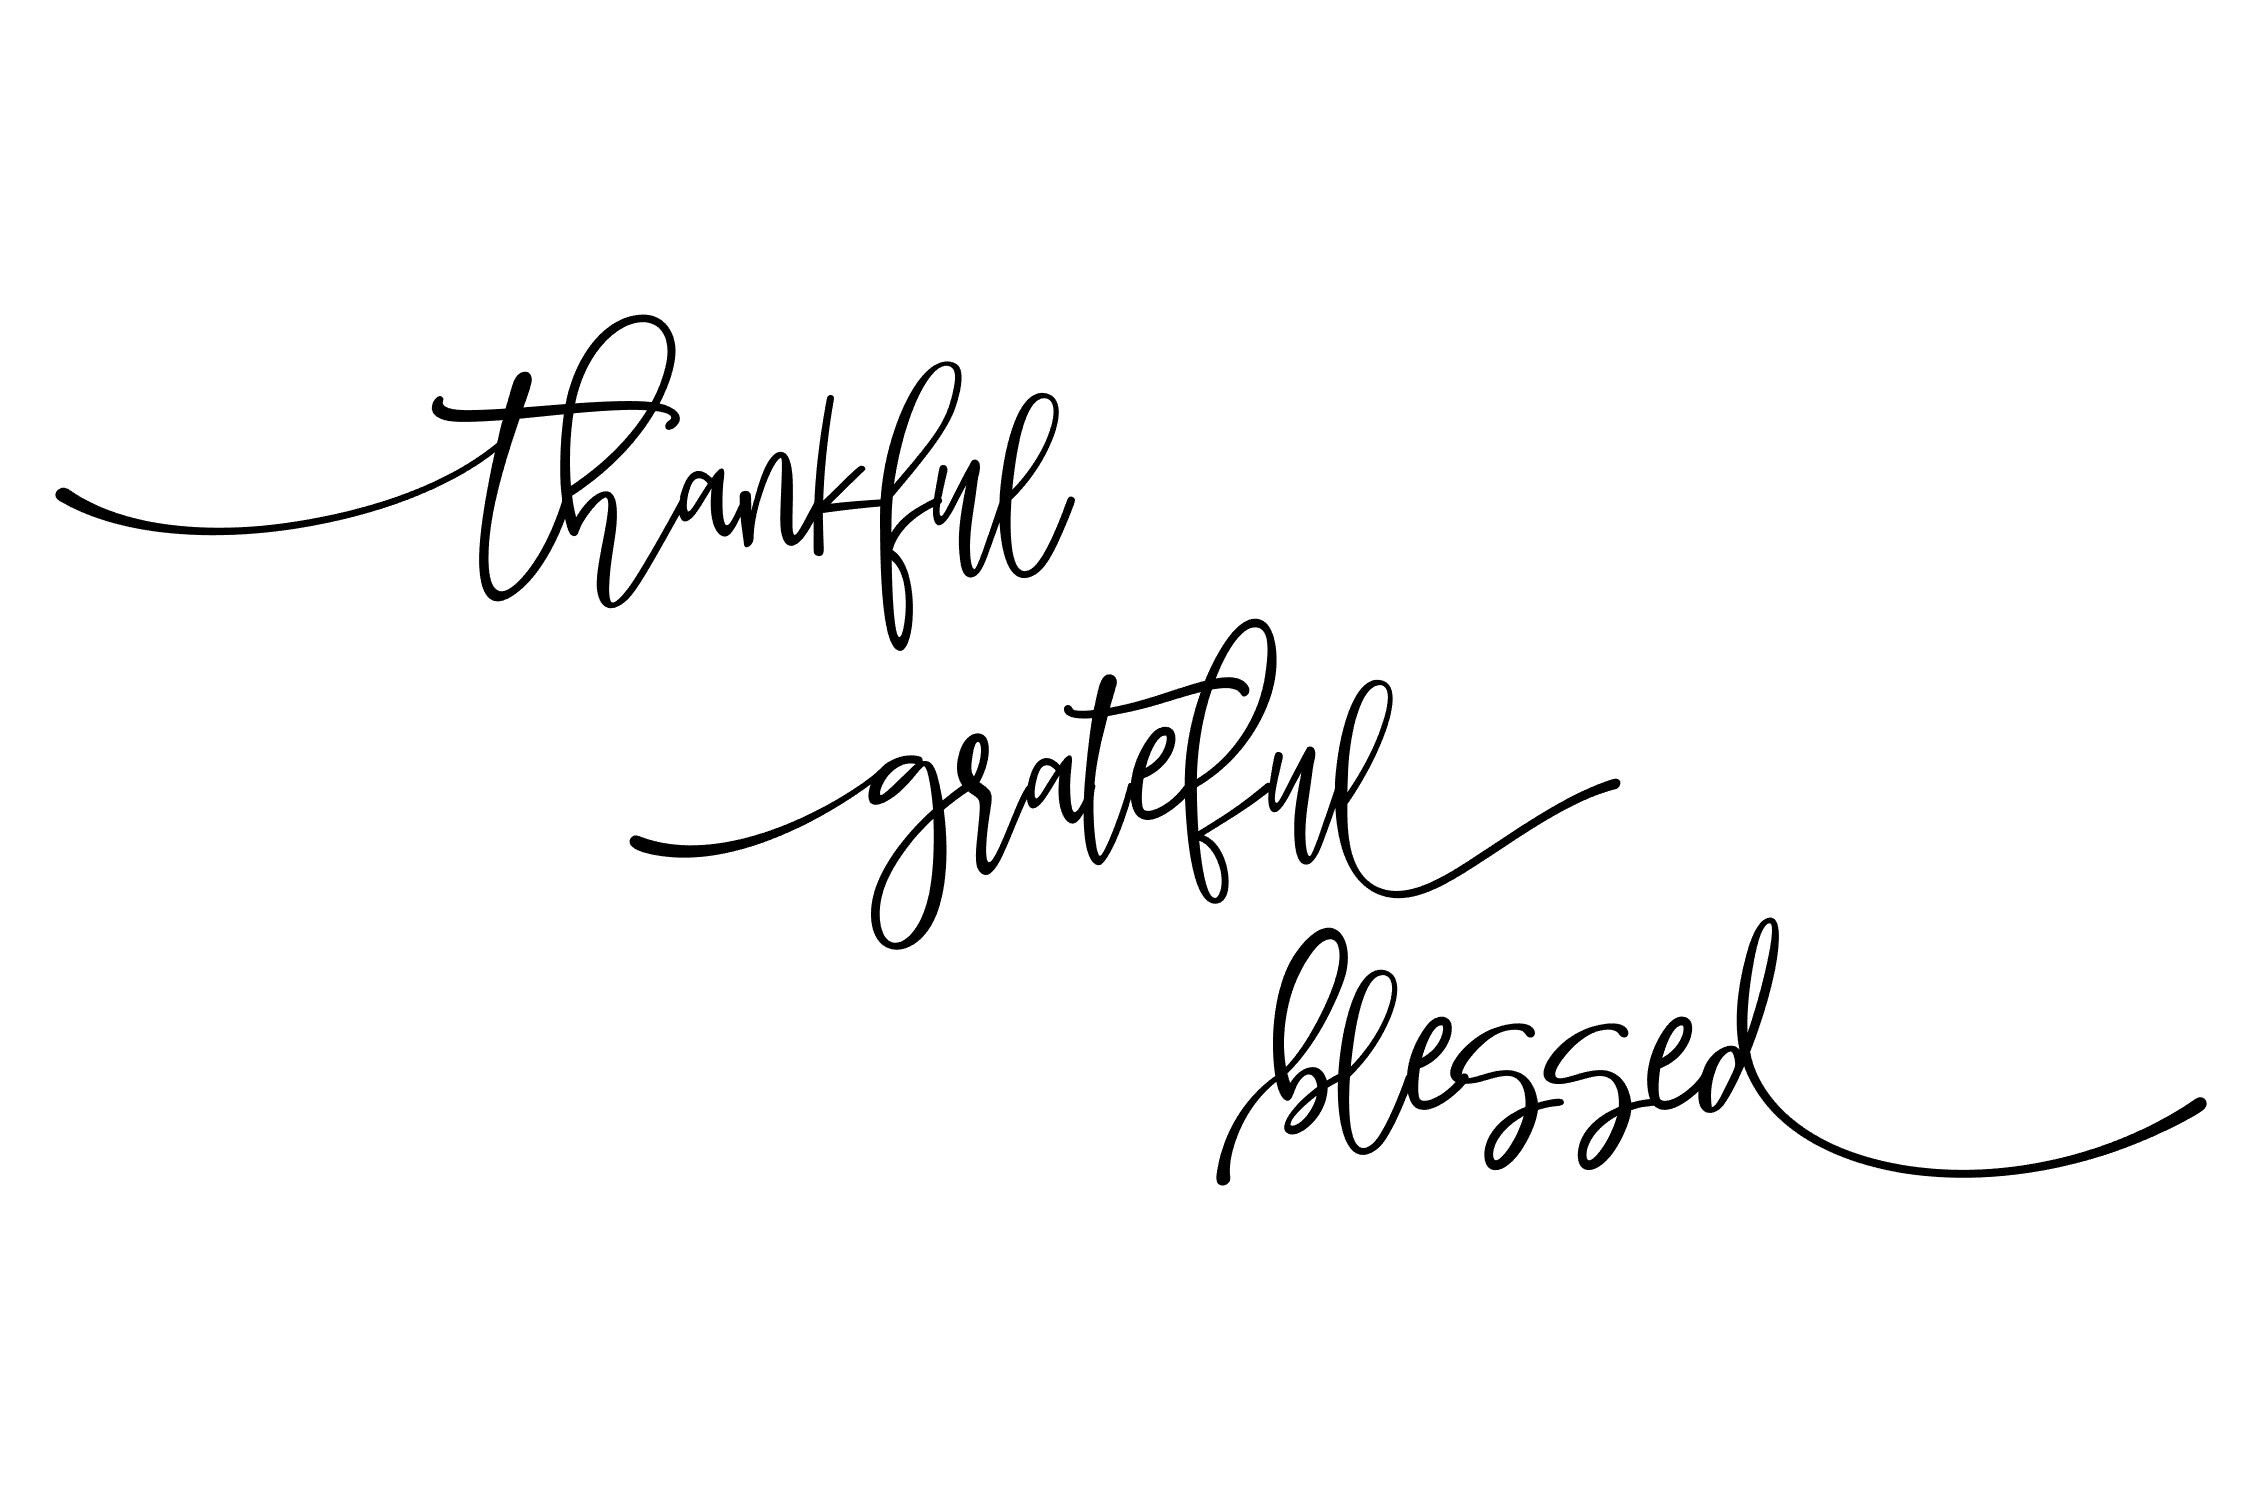 Thankful Grateful Blessed Svg Png Eps By Studio 26 Design Co Thehungryjpeg Com